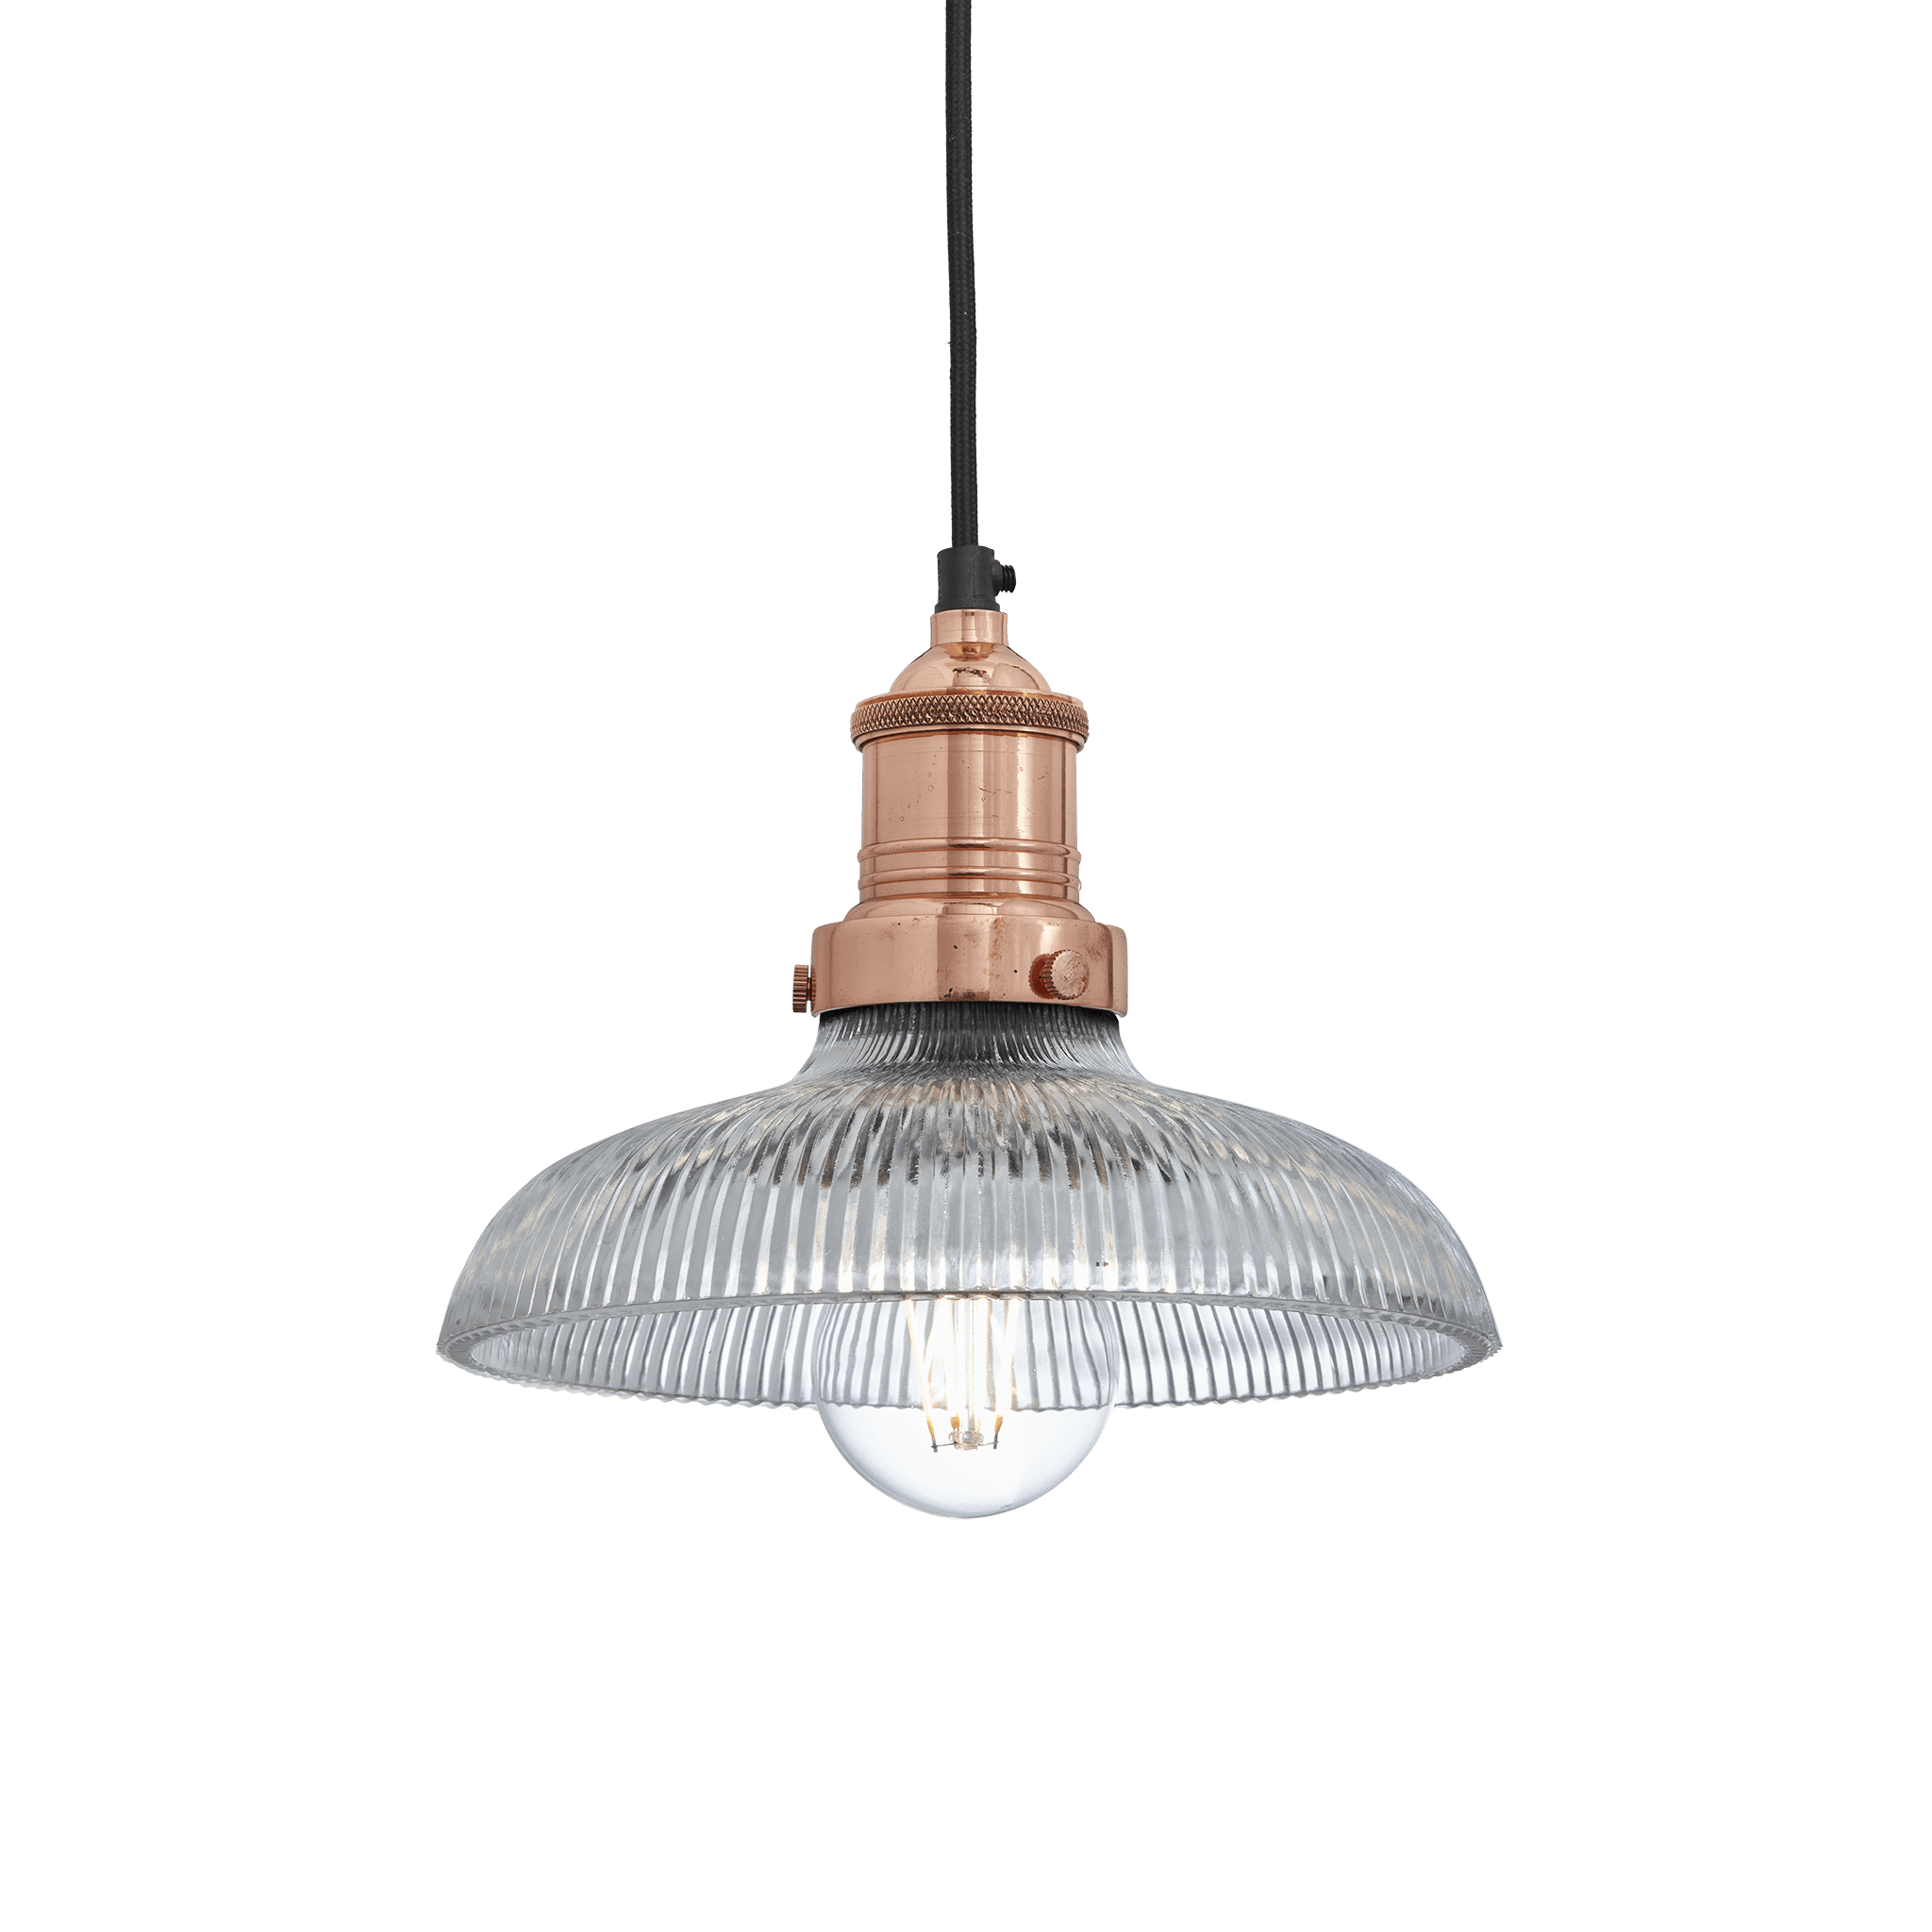 Industville Brooklyn Glass Dome Pendant 8 Inch Ceiling Light Light Shade Copper Clear Colour Copper Brass Retro Lighting Glass Domes Glass